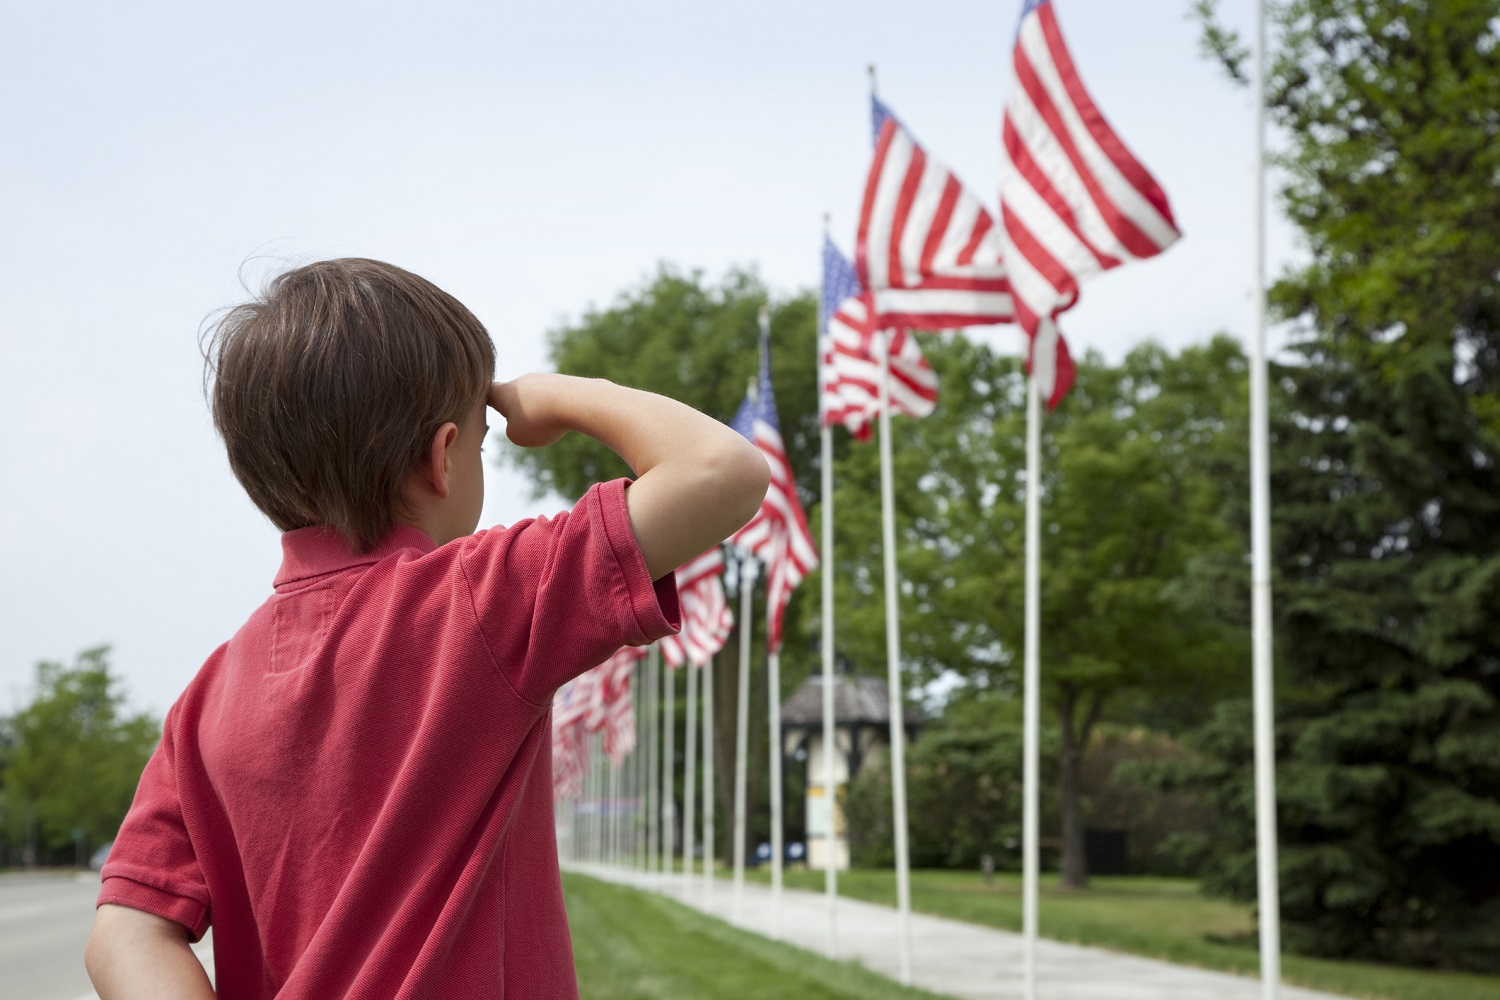 How Big is Too Big When it Comes to the American Flag?